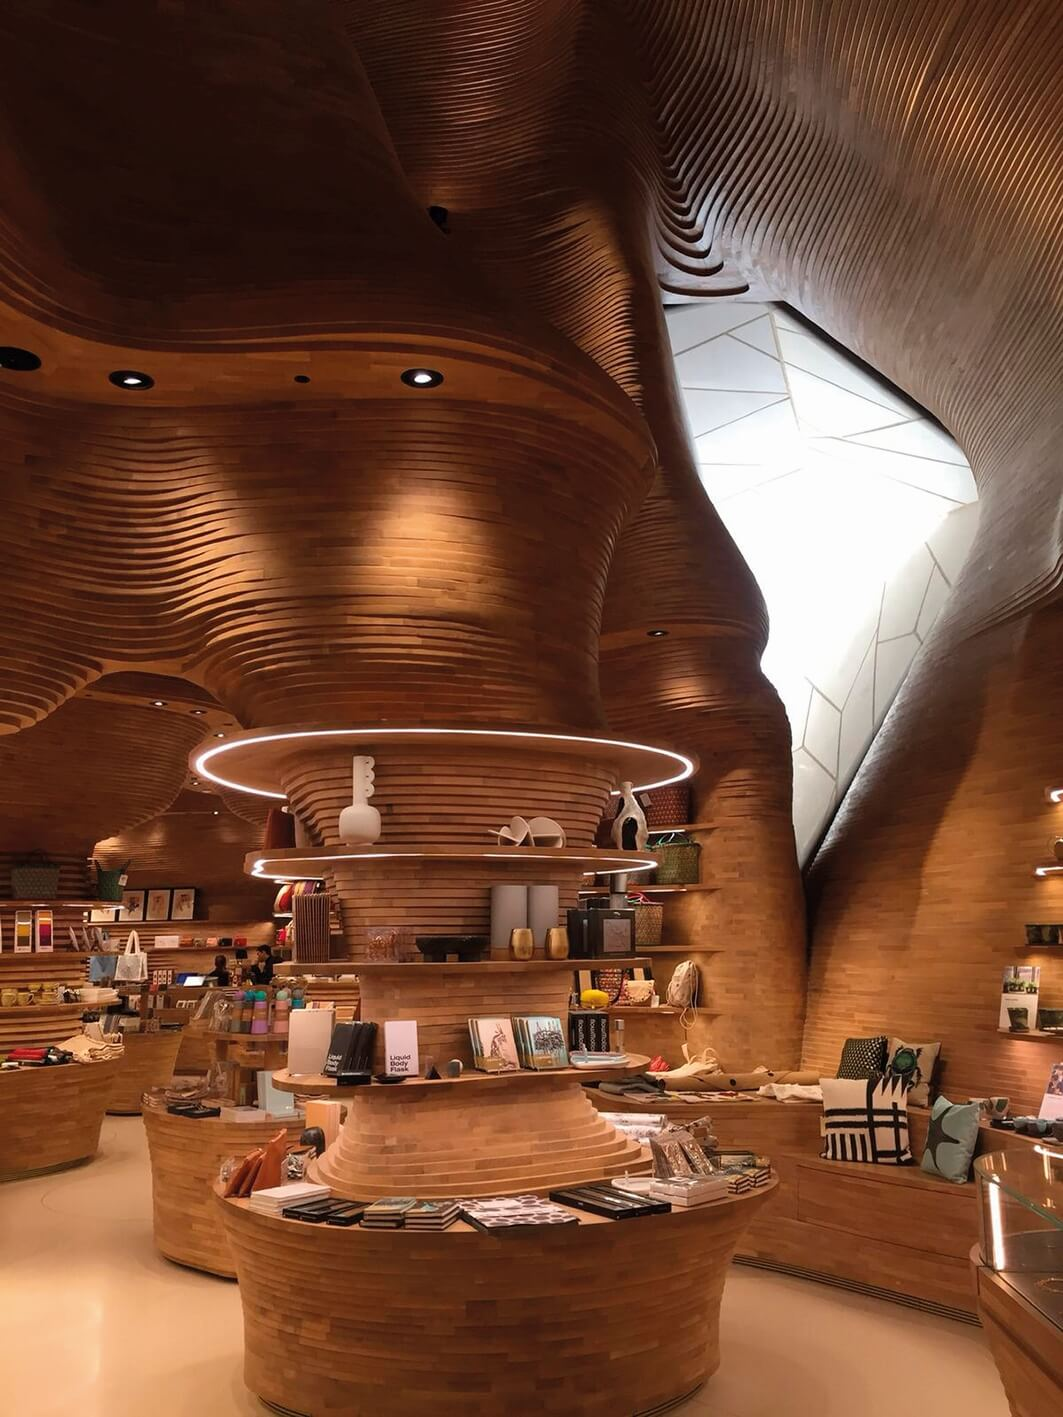 Stunning design in a museum gift shop.